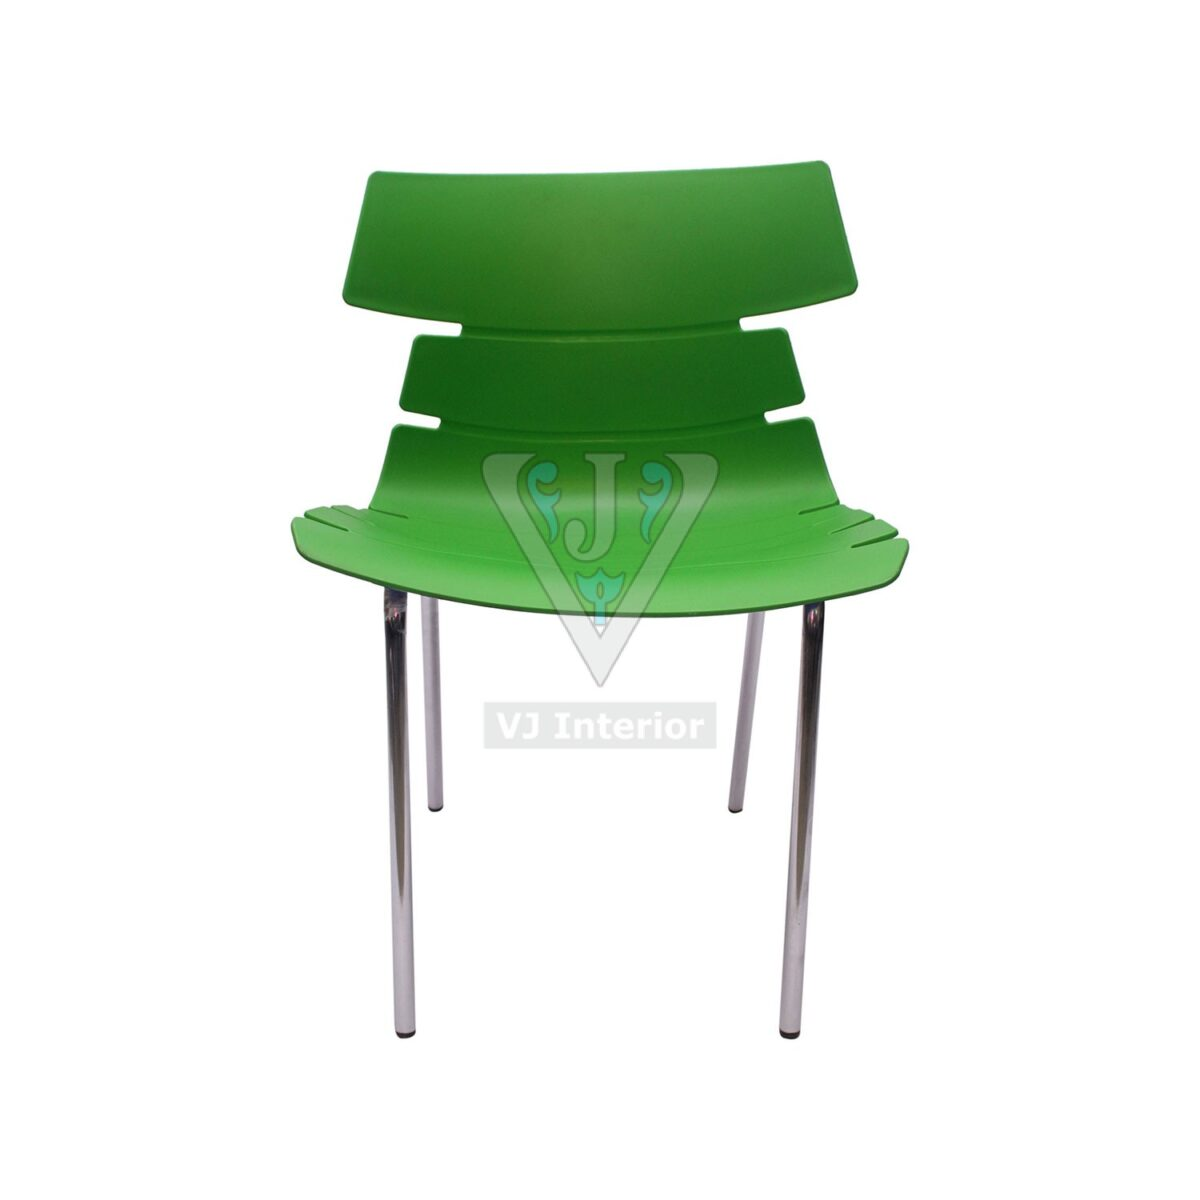 THE ALISAR STEEL FRAME PLASTIC CHAIR GREEN